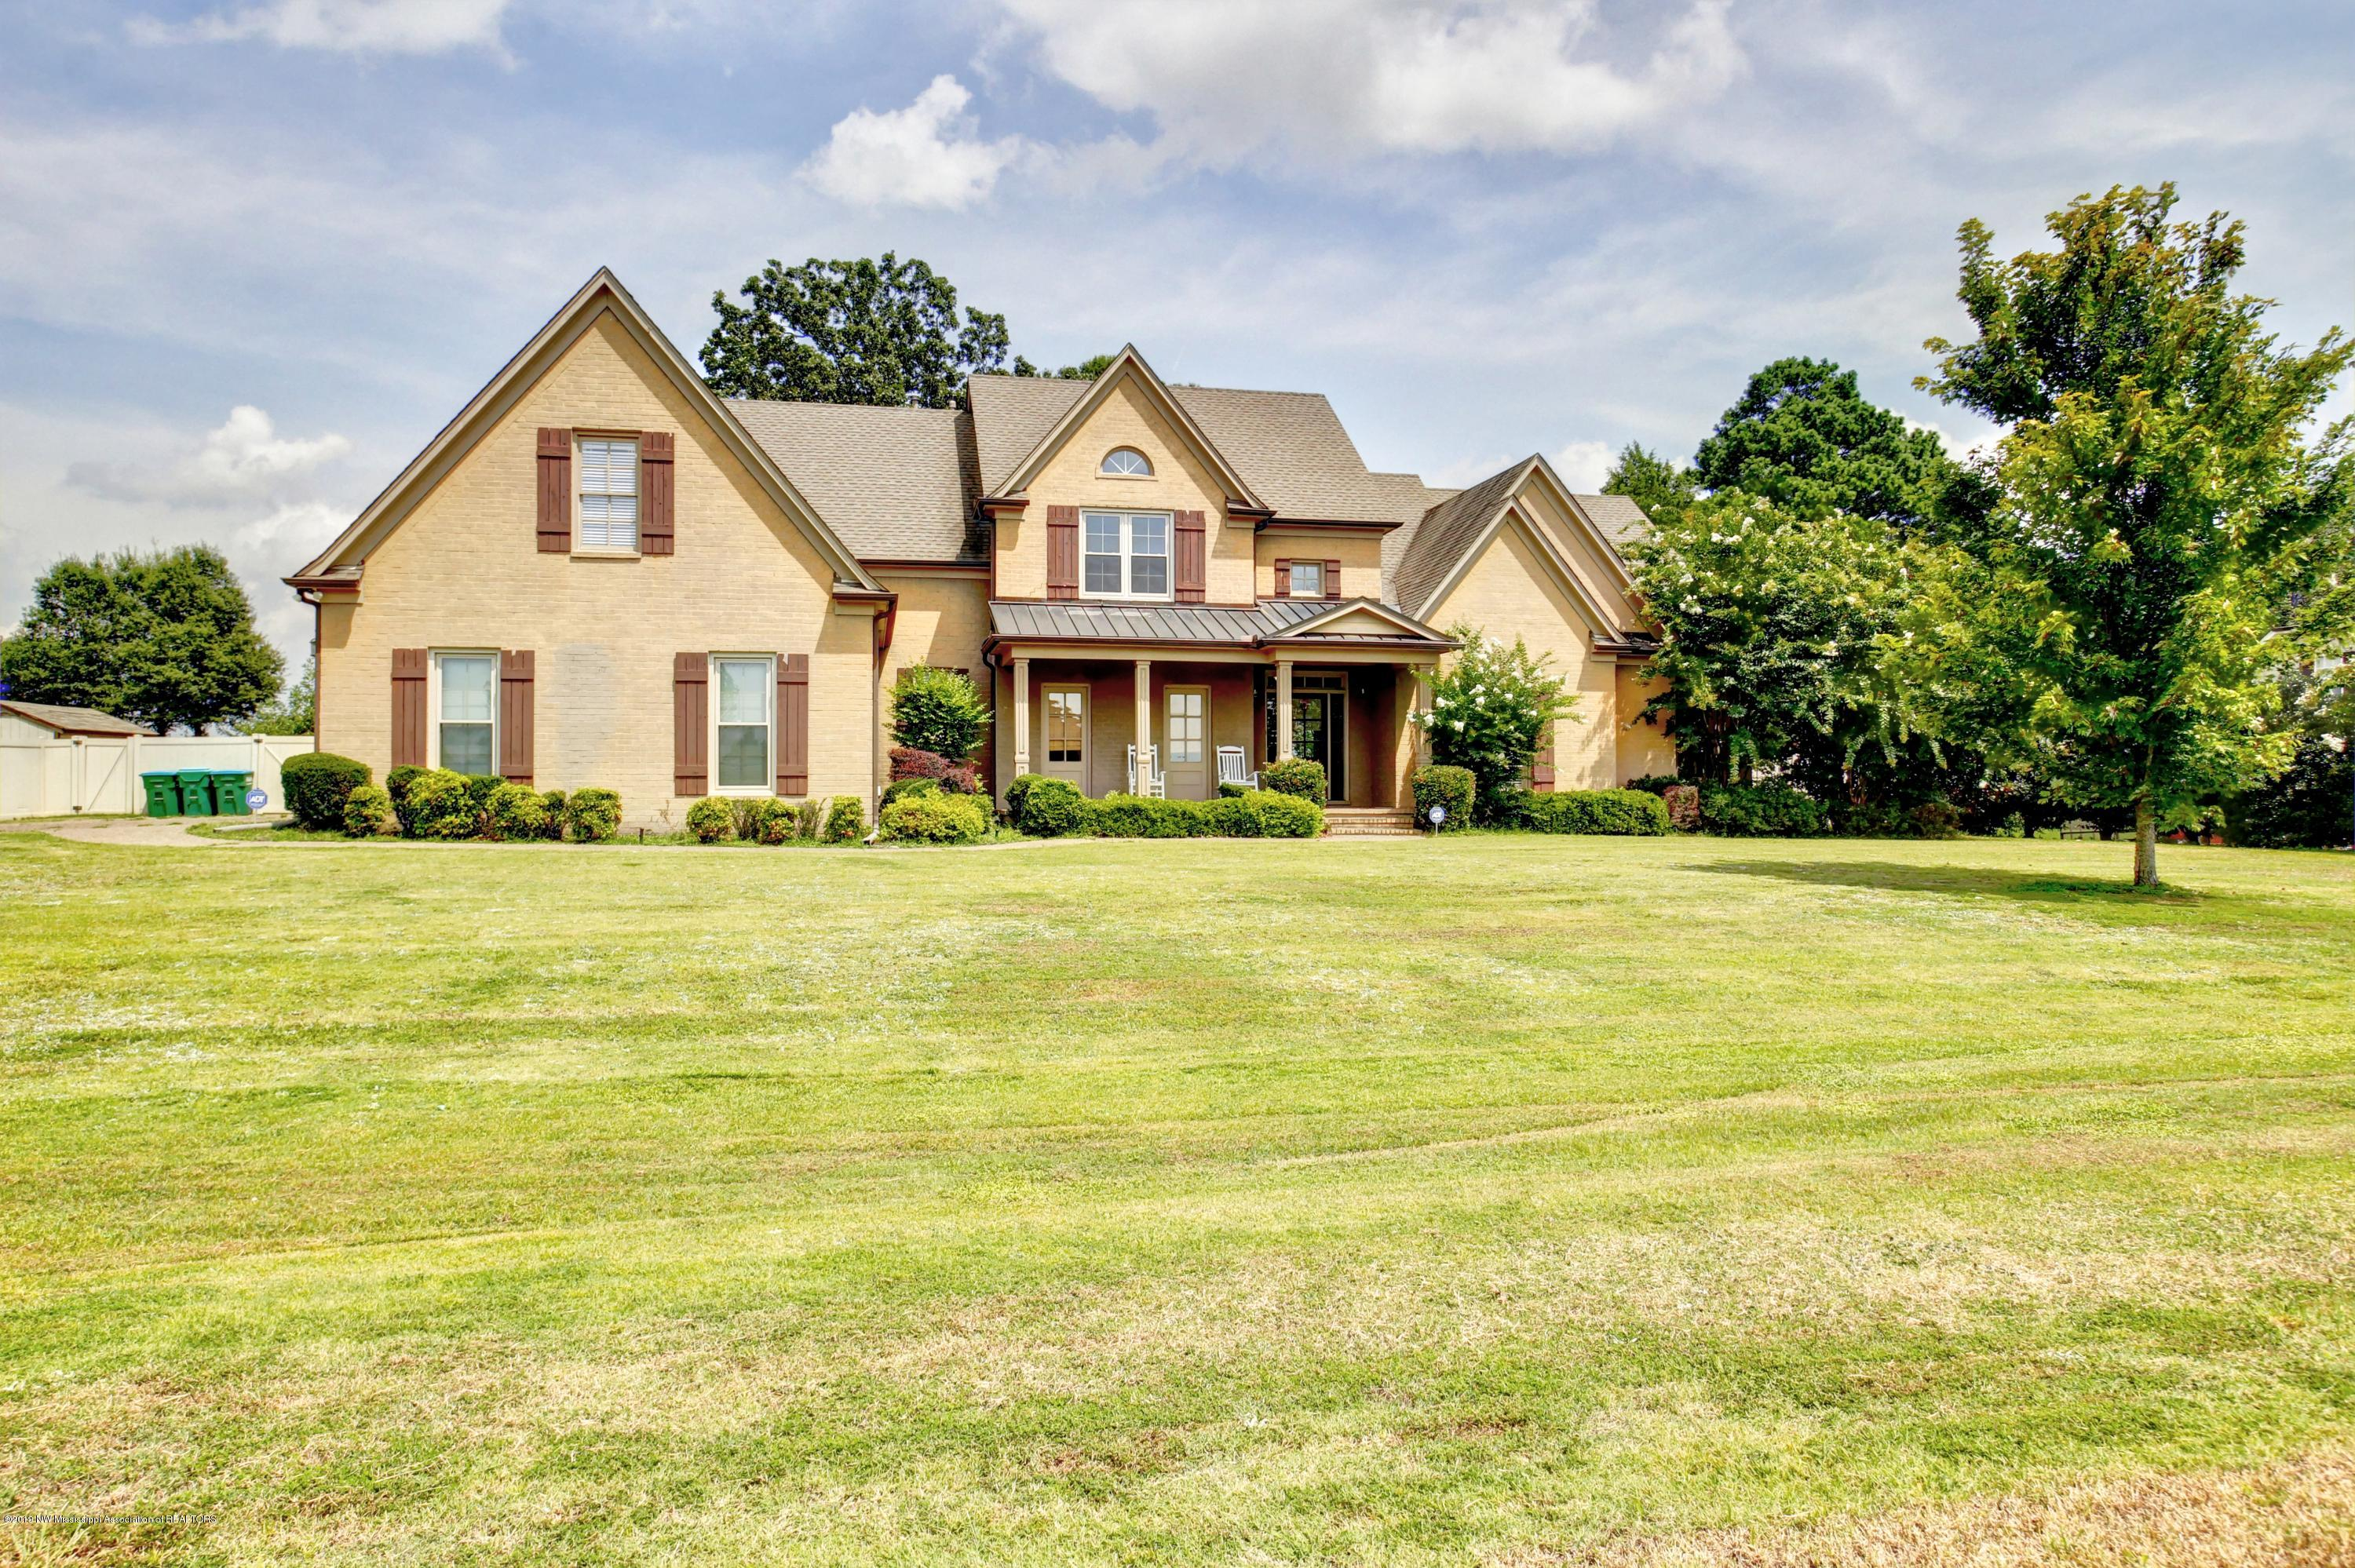 3590 Rutledge Road, Olive Branch in DeSoto County, MS 38654 Home for Sale